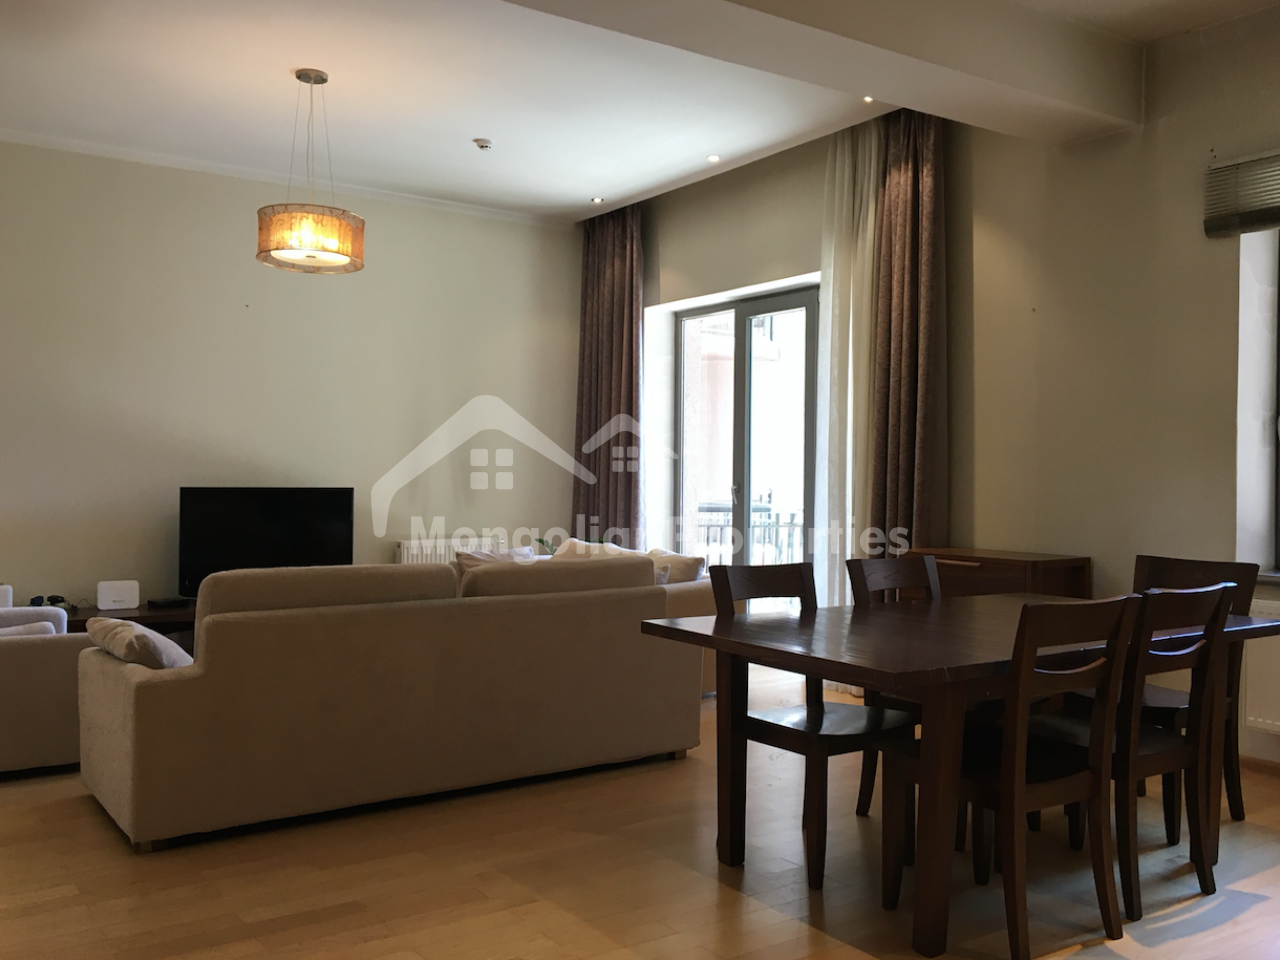 3 BEDROOMS APARTMENT FOR RENT IN REGENCY RESIDENCE, IN EMBASSY AREA